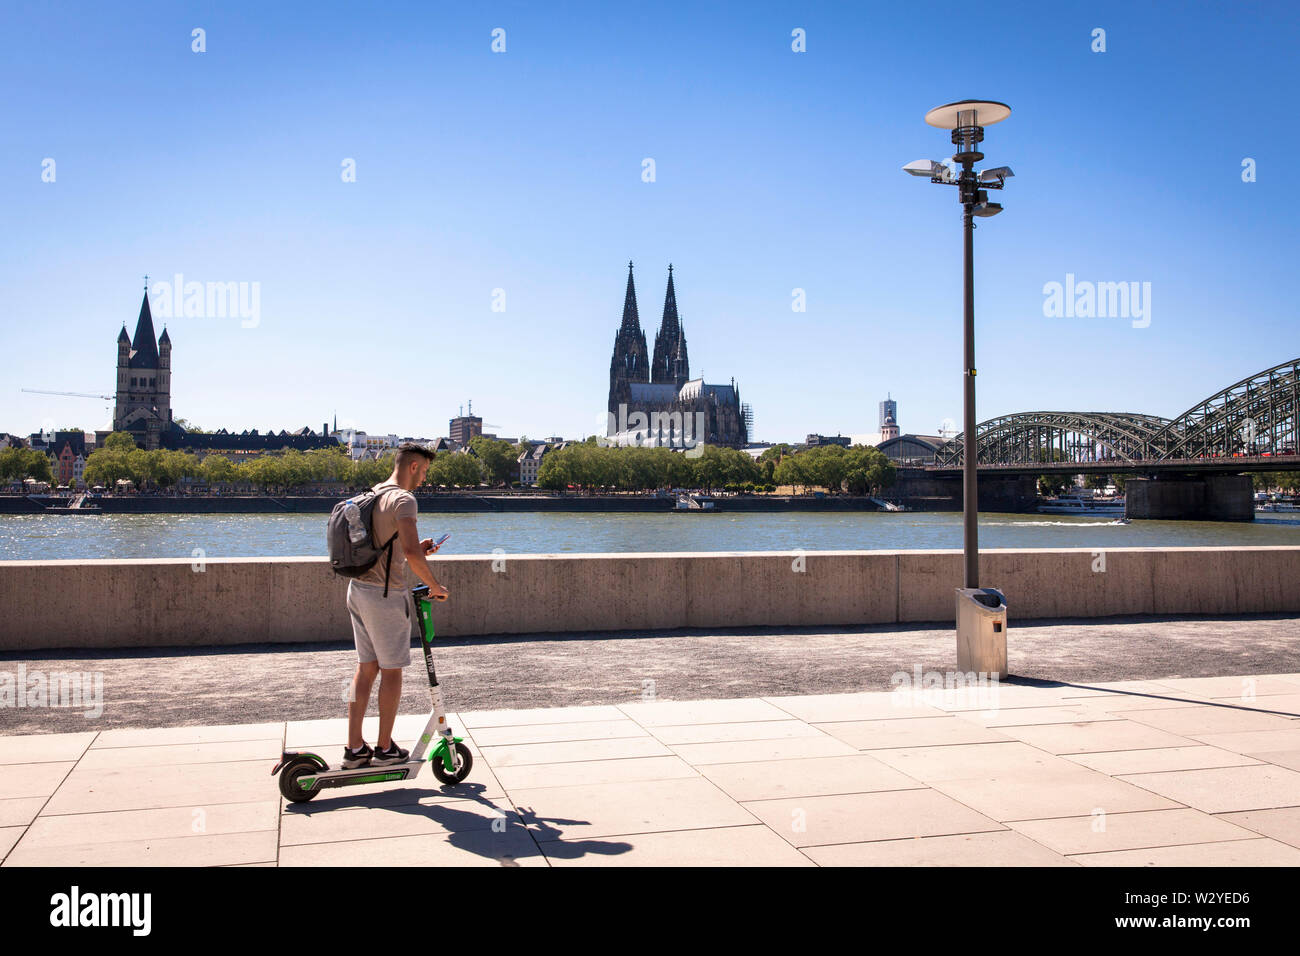 man on a rental electric scooter on the banks of the river Rhine in the district Deutz, Cologne, Germany. Church Gross St. Martin and the cathedral. - Stock Image